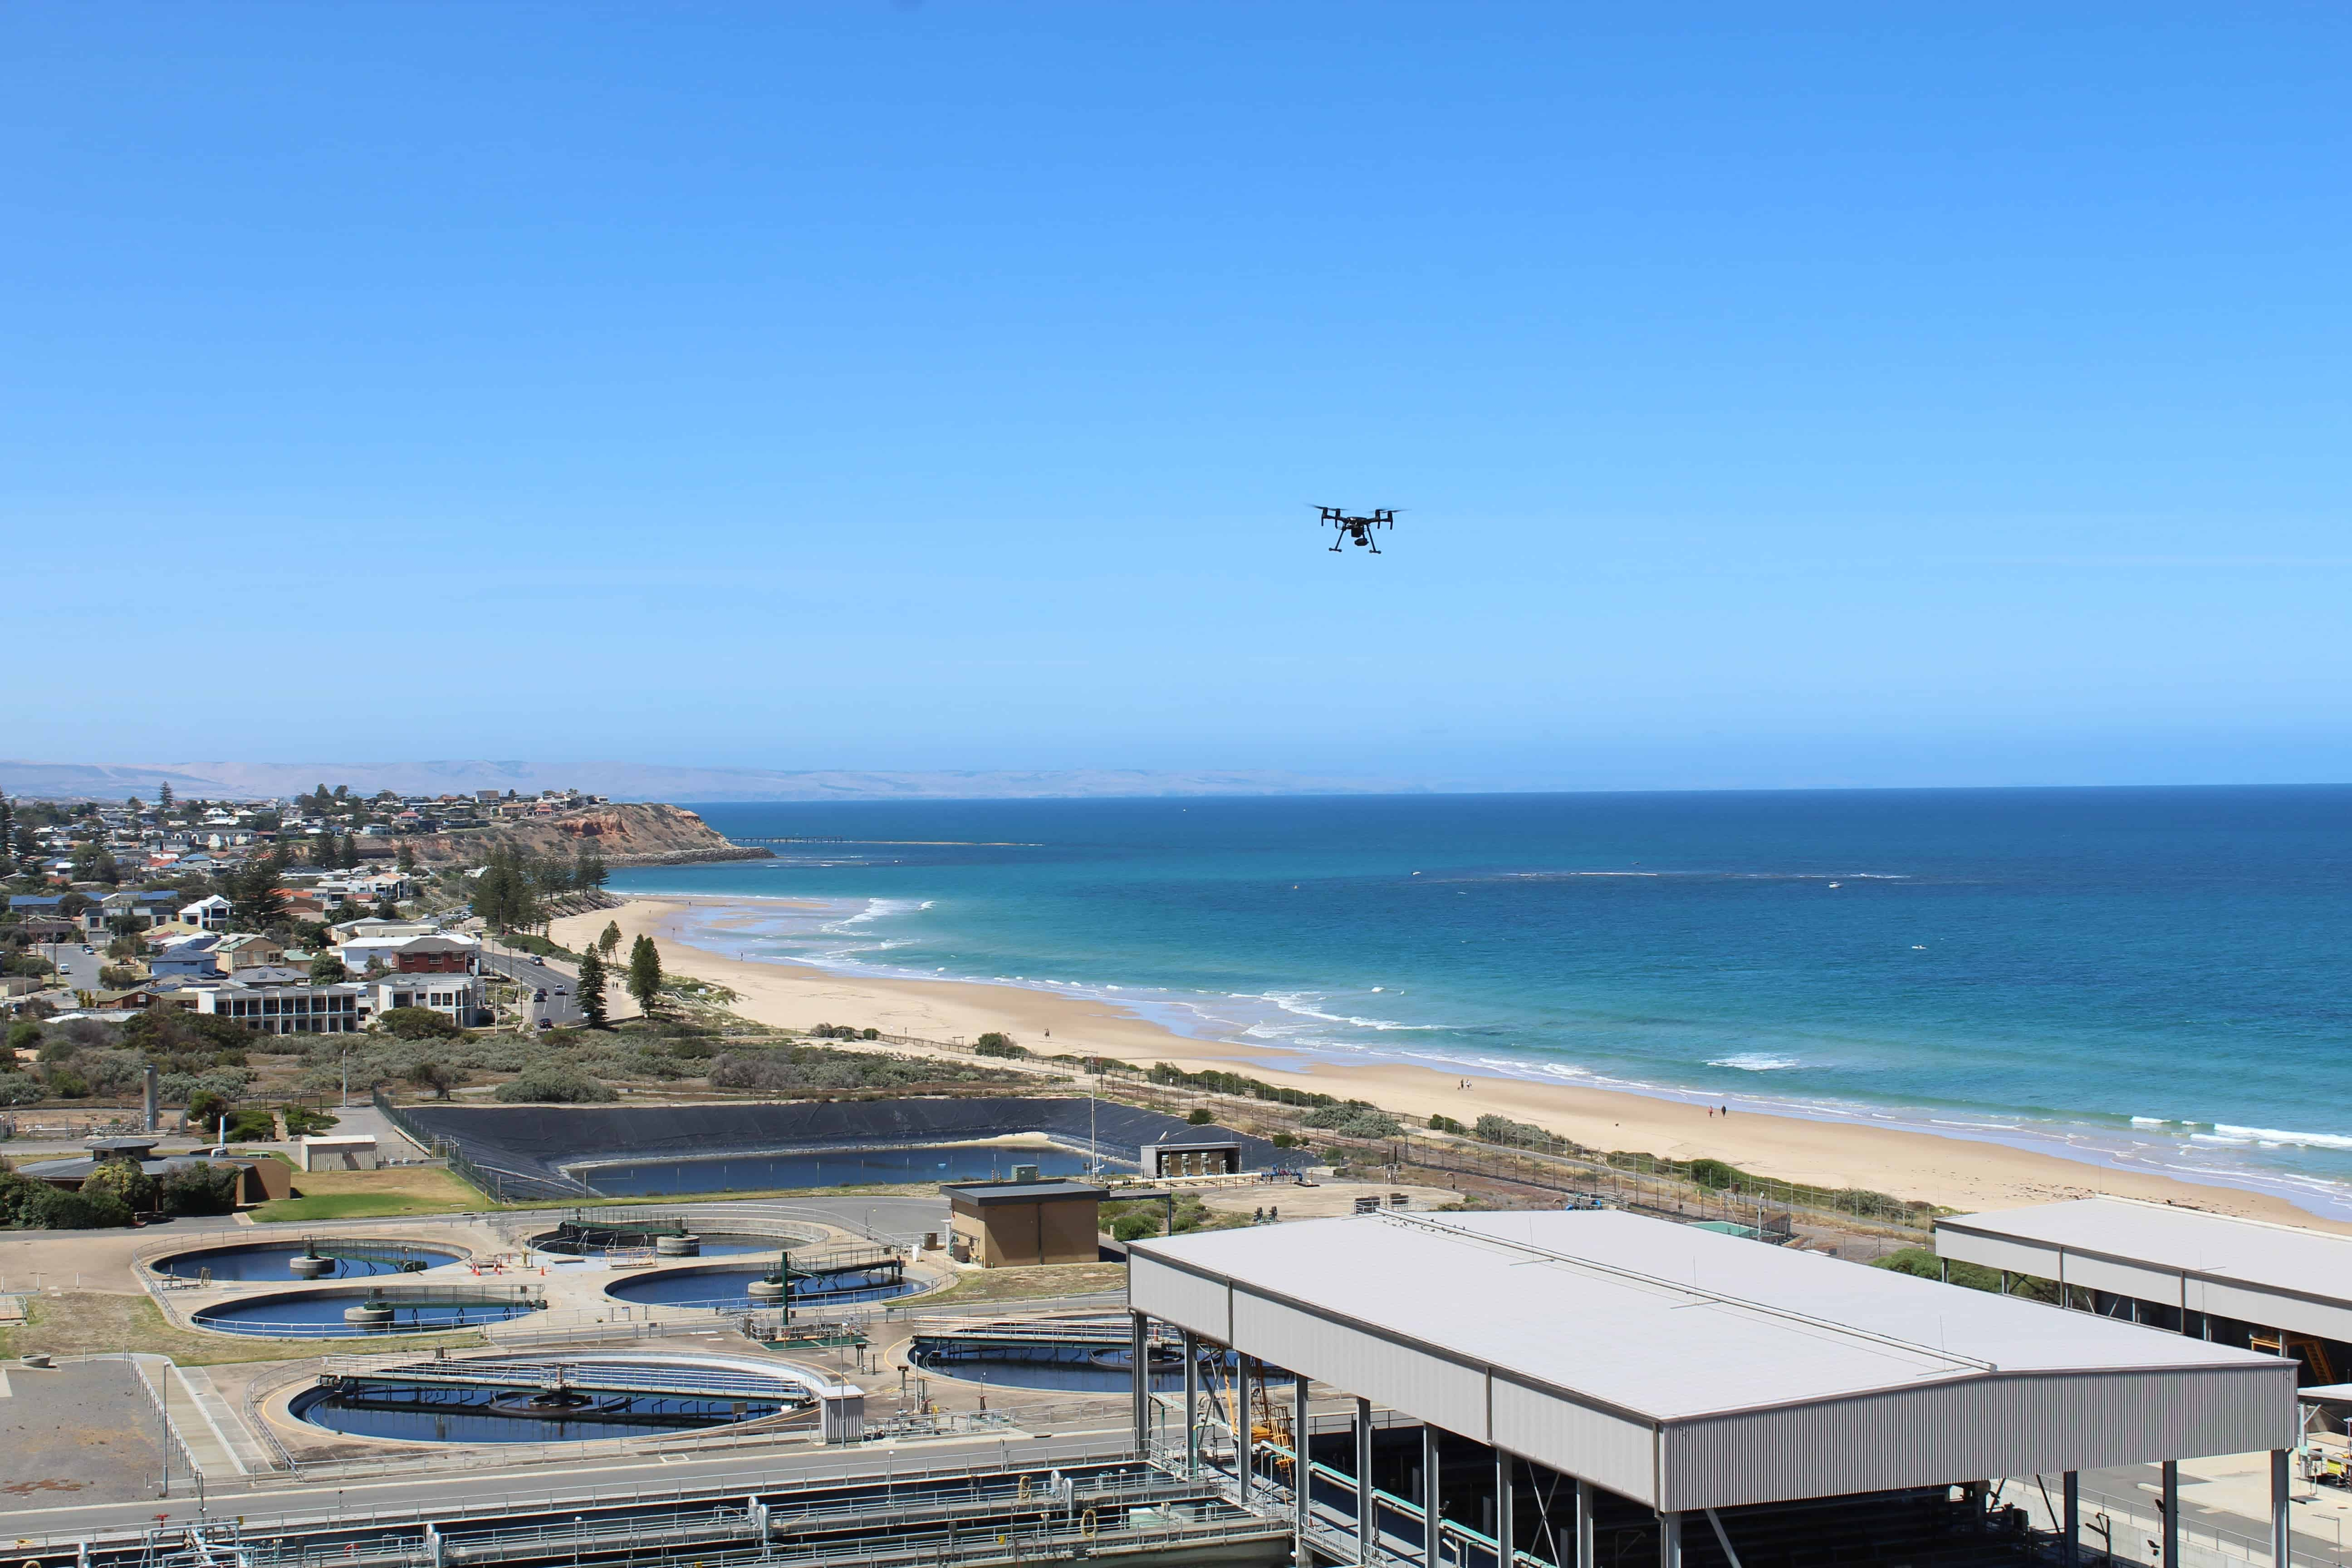 Drones rise above to deliver sky-high safety